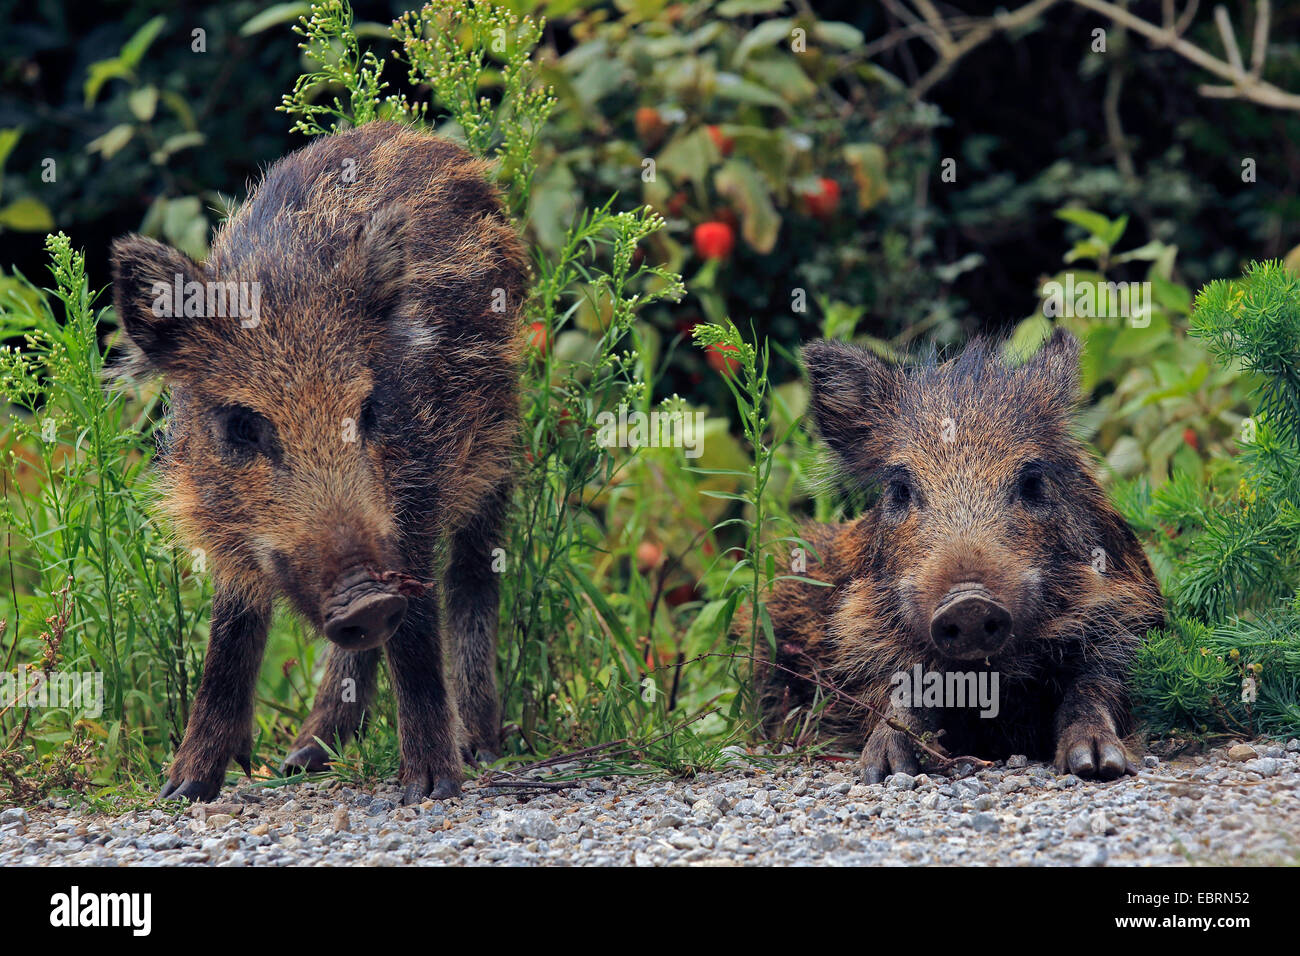 wild boar, pig, wild boar (Sus scrofa), two shotes in the shrub, Germany, Baden-Wuerttemberg - Stock Image